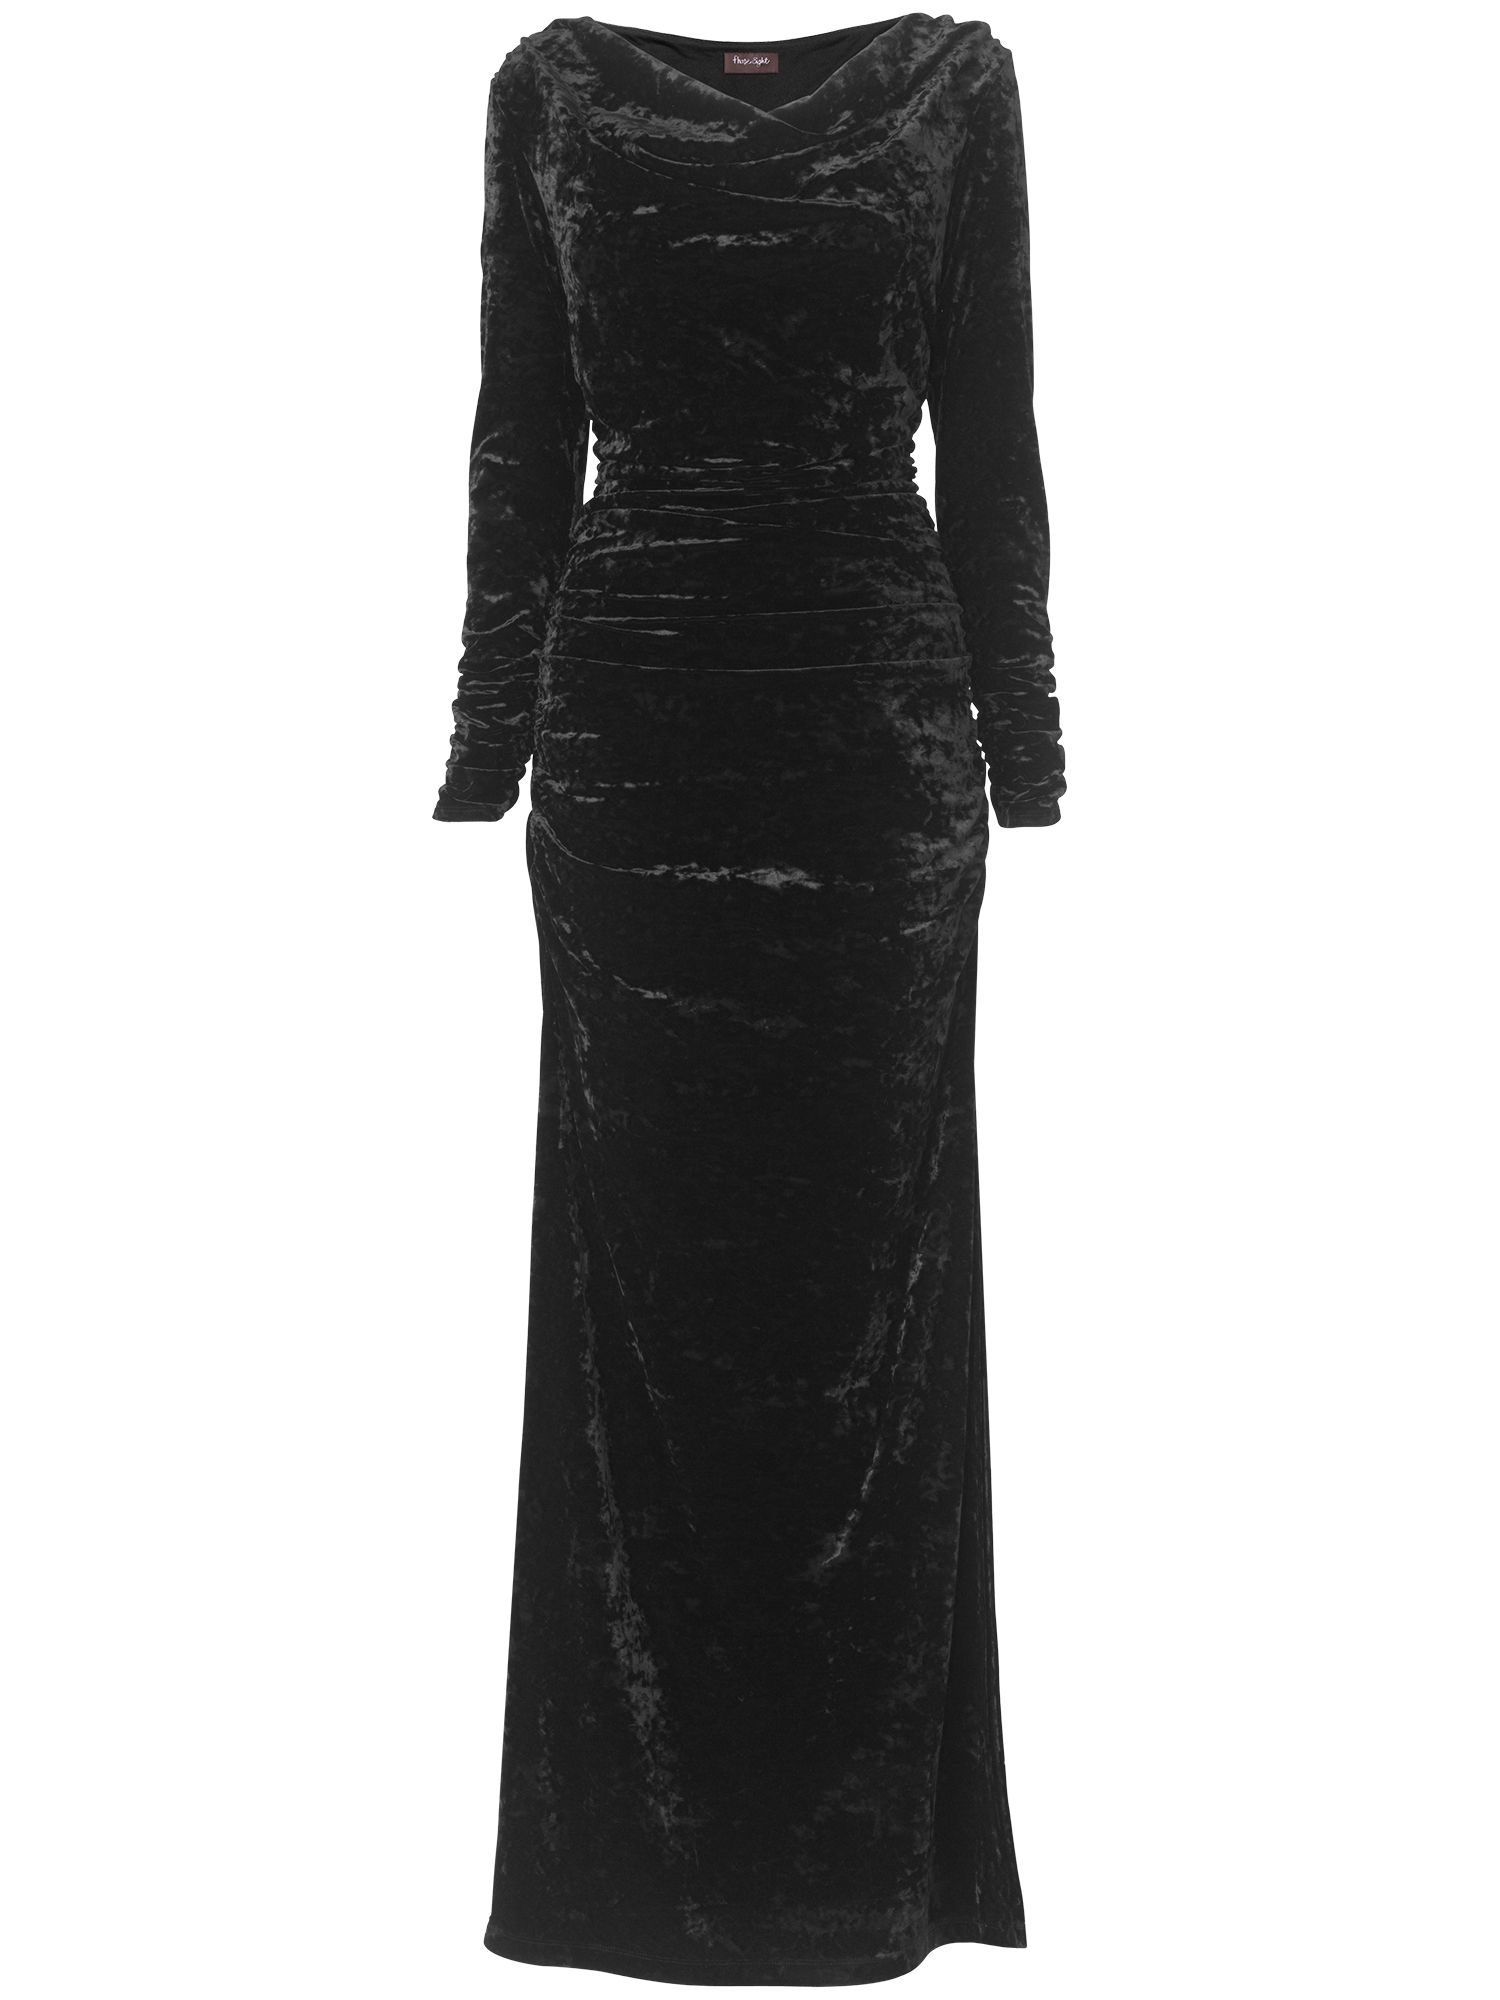 Dolores velvet dress